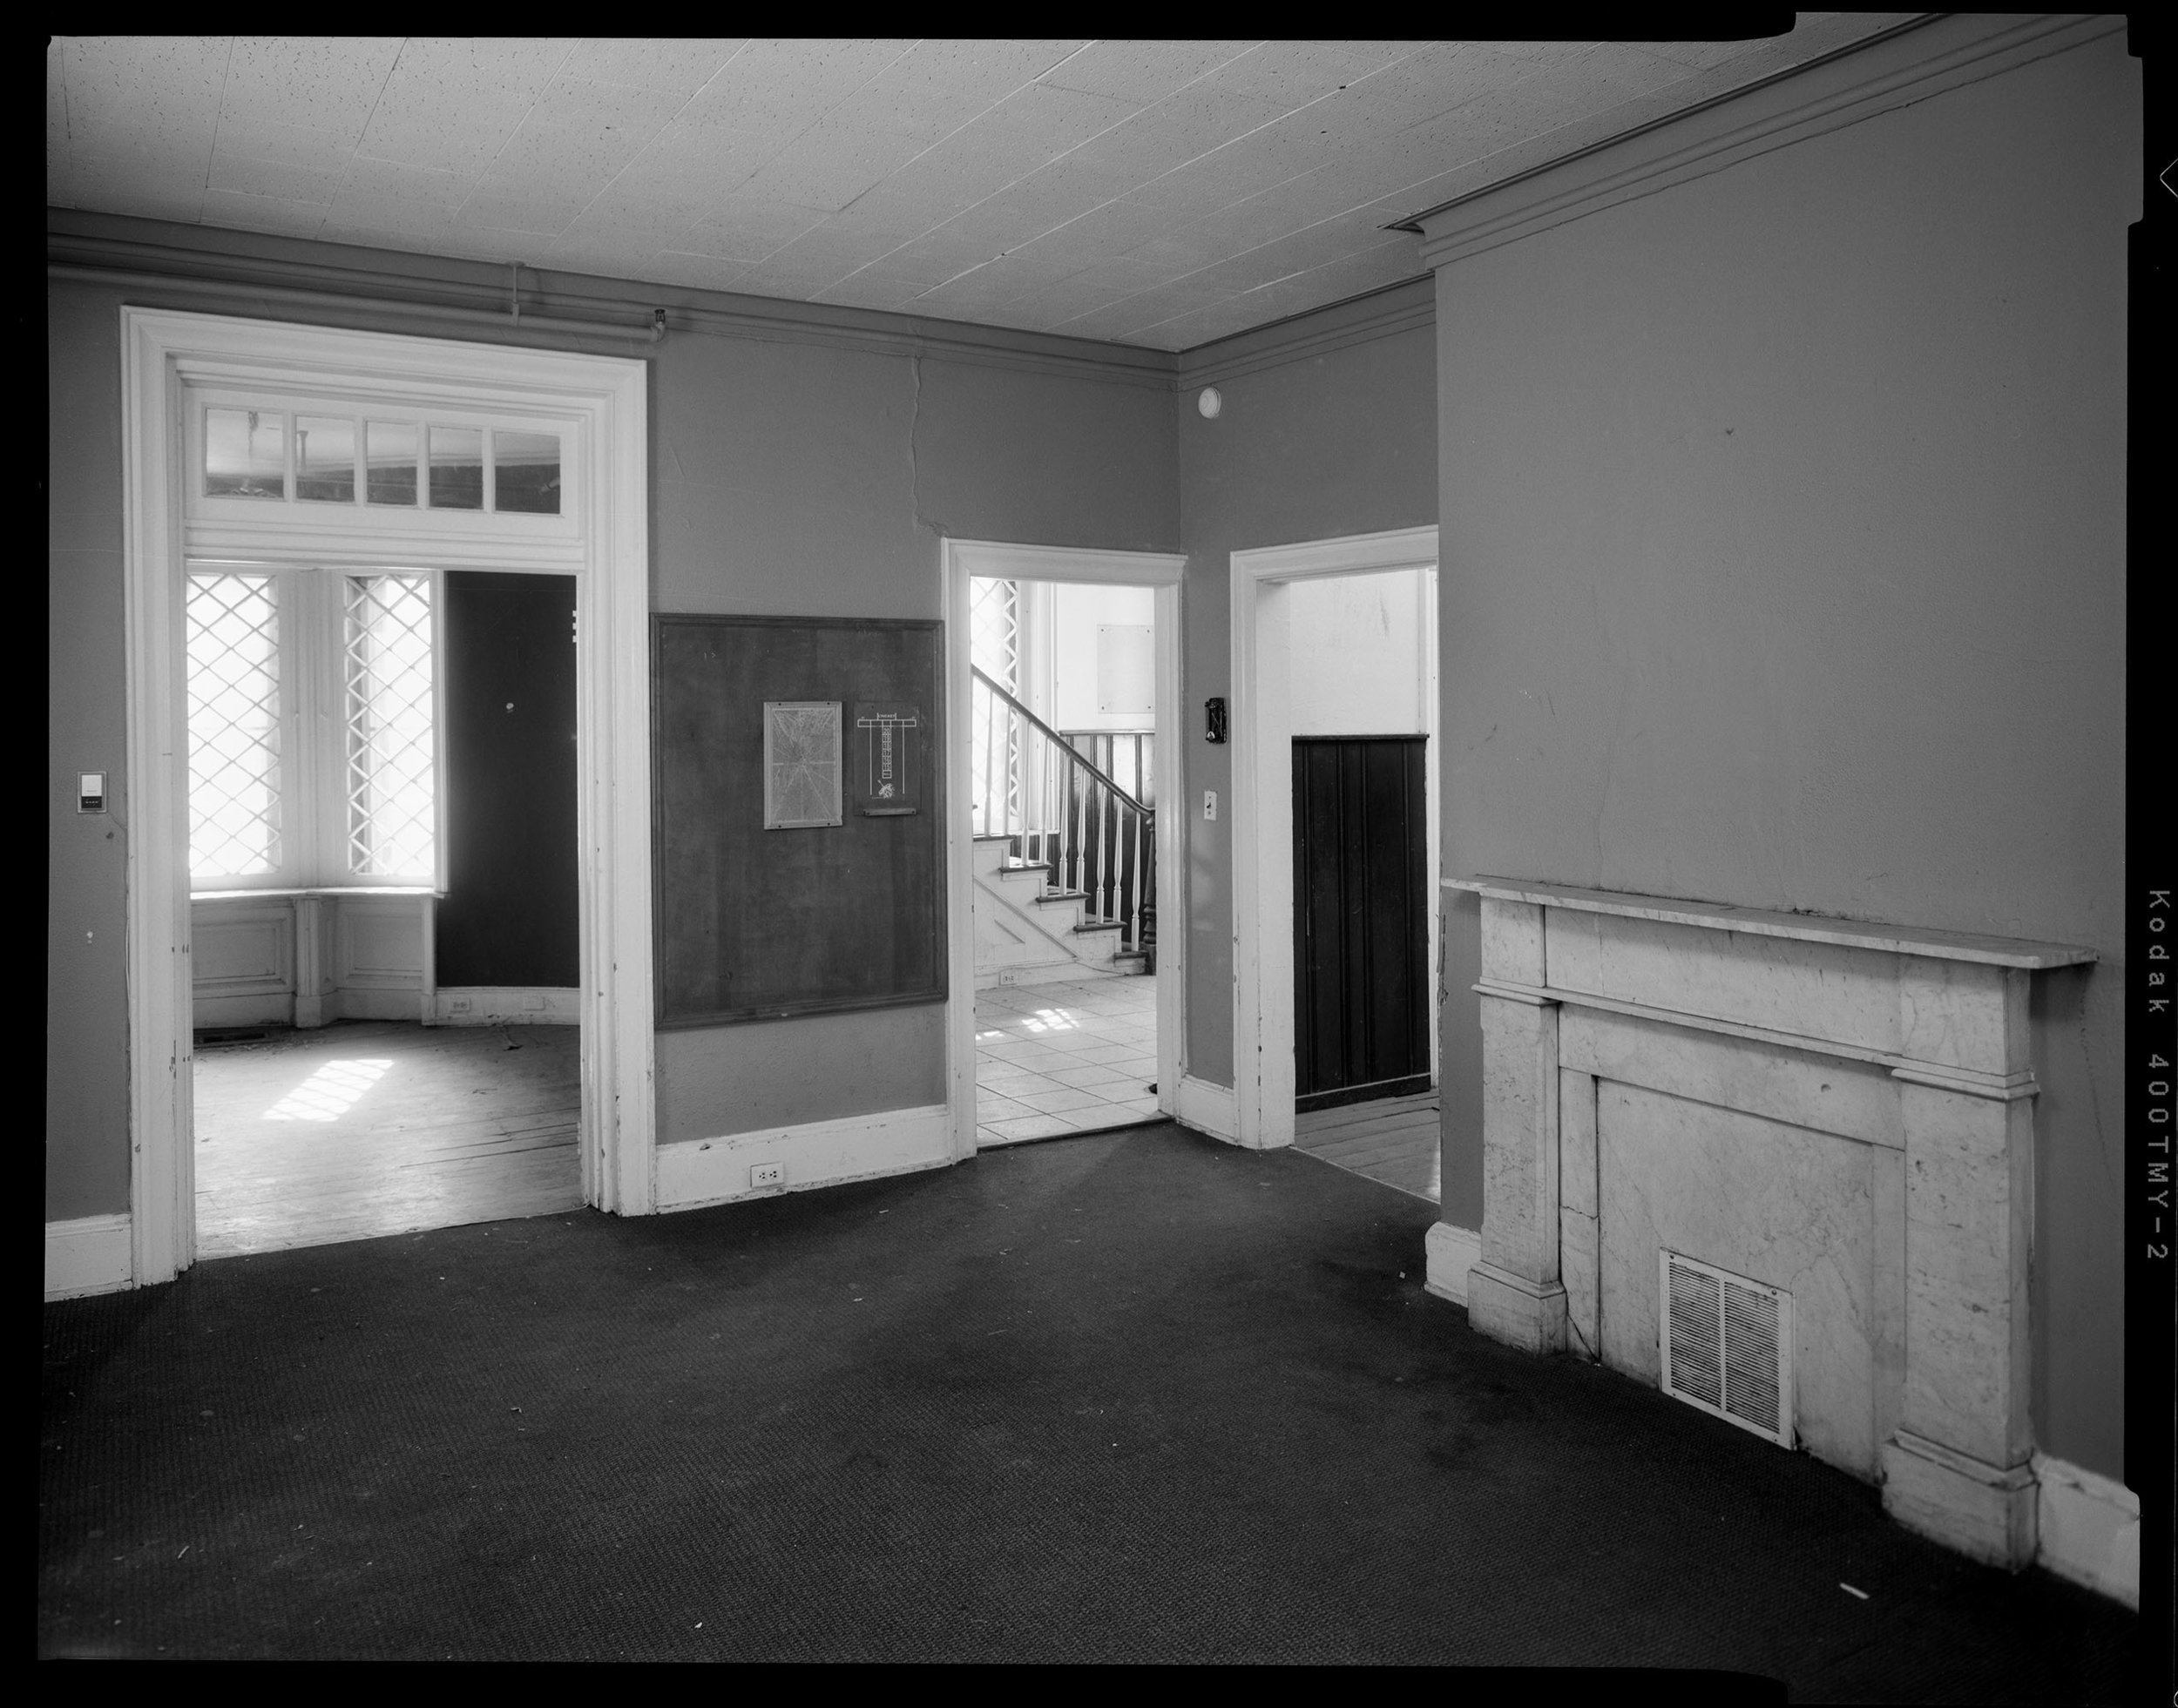 Dining_Room_Showing_Mantelpiece_and_Passageways.jpg